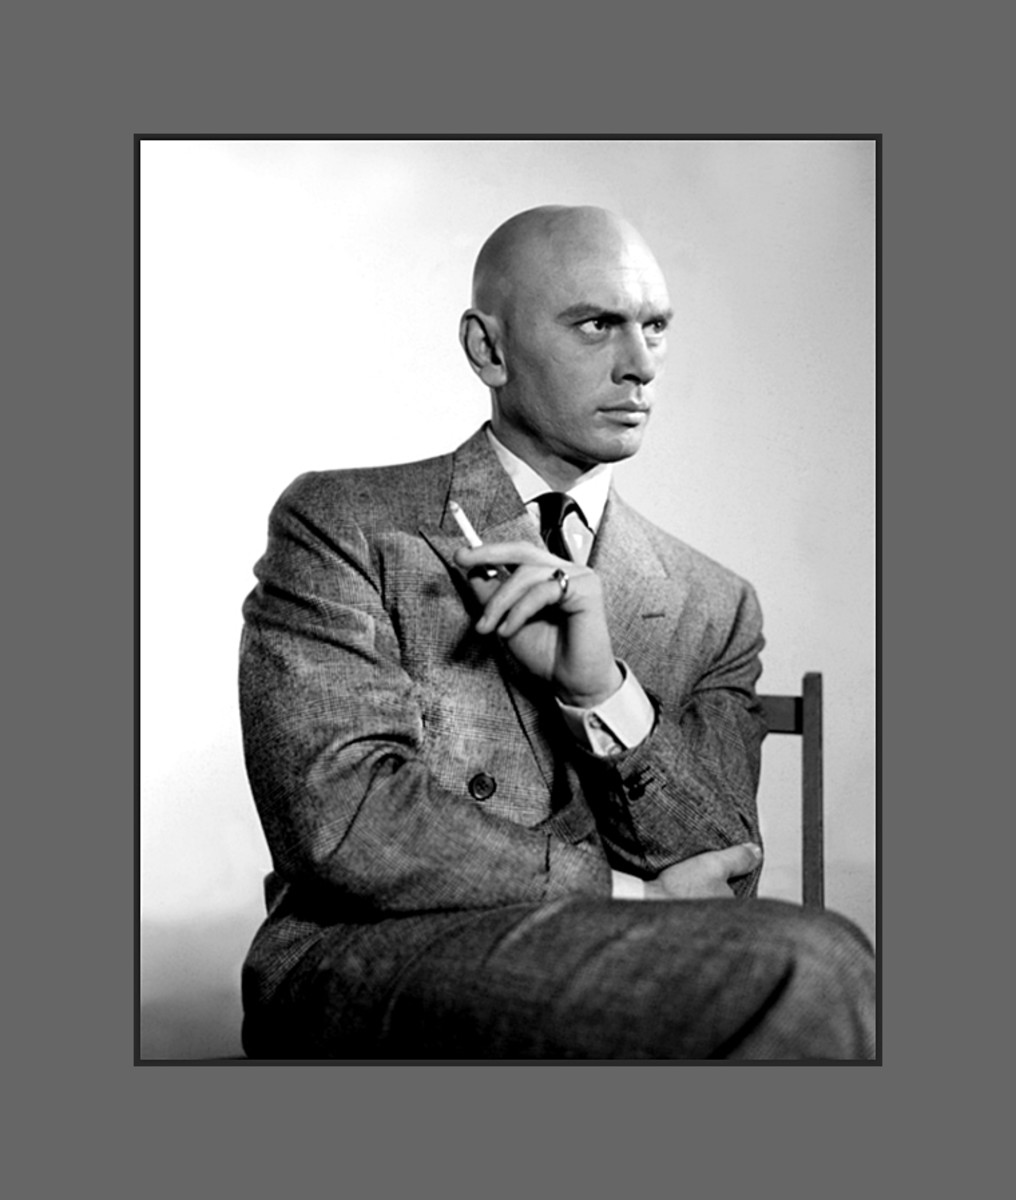 Yul Brynner wore his baldness with pride - Hairstyles for Men with Balding Thinning Hair Style Cuts Trends